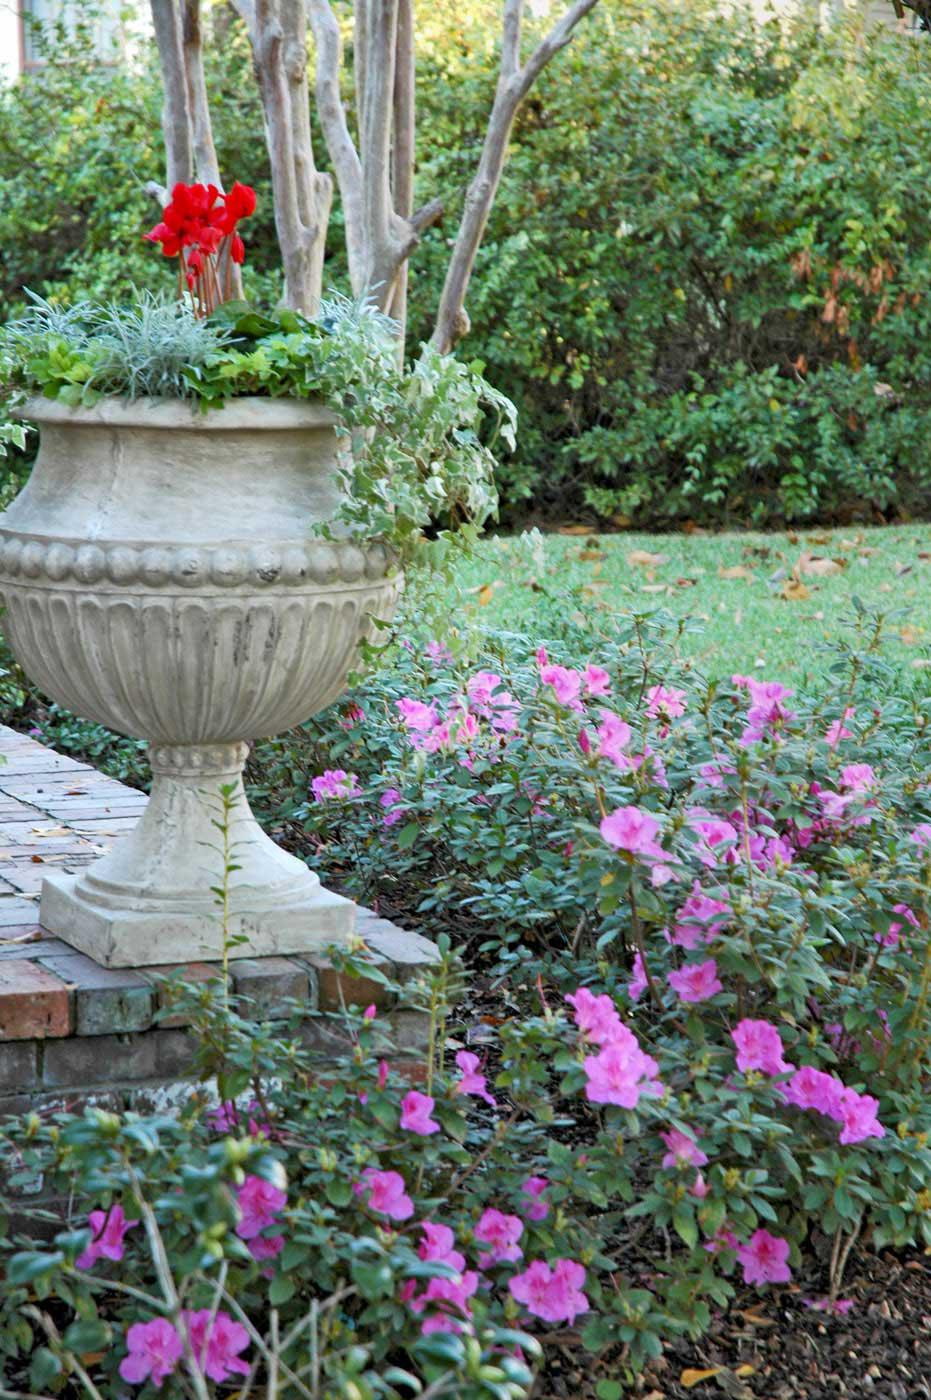 Encore azaleas will provide spring-like blooms even as the Christmas holidays approach.